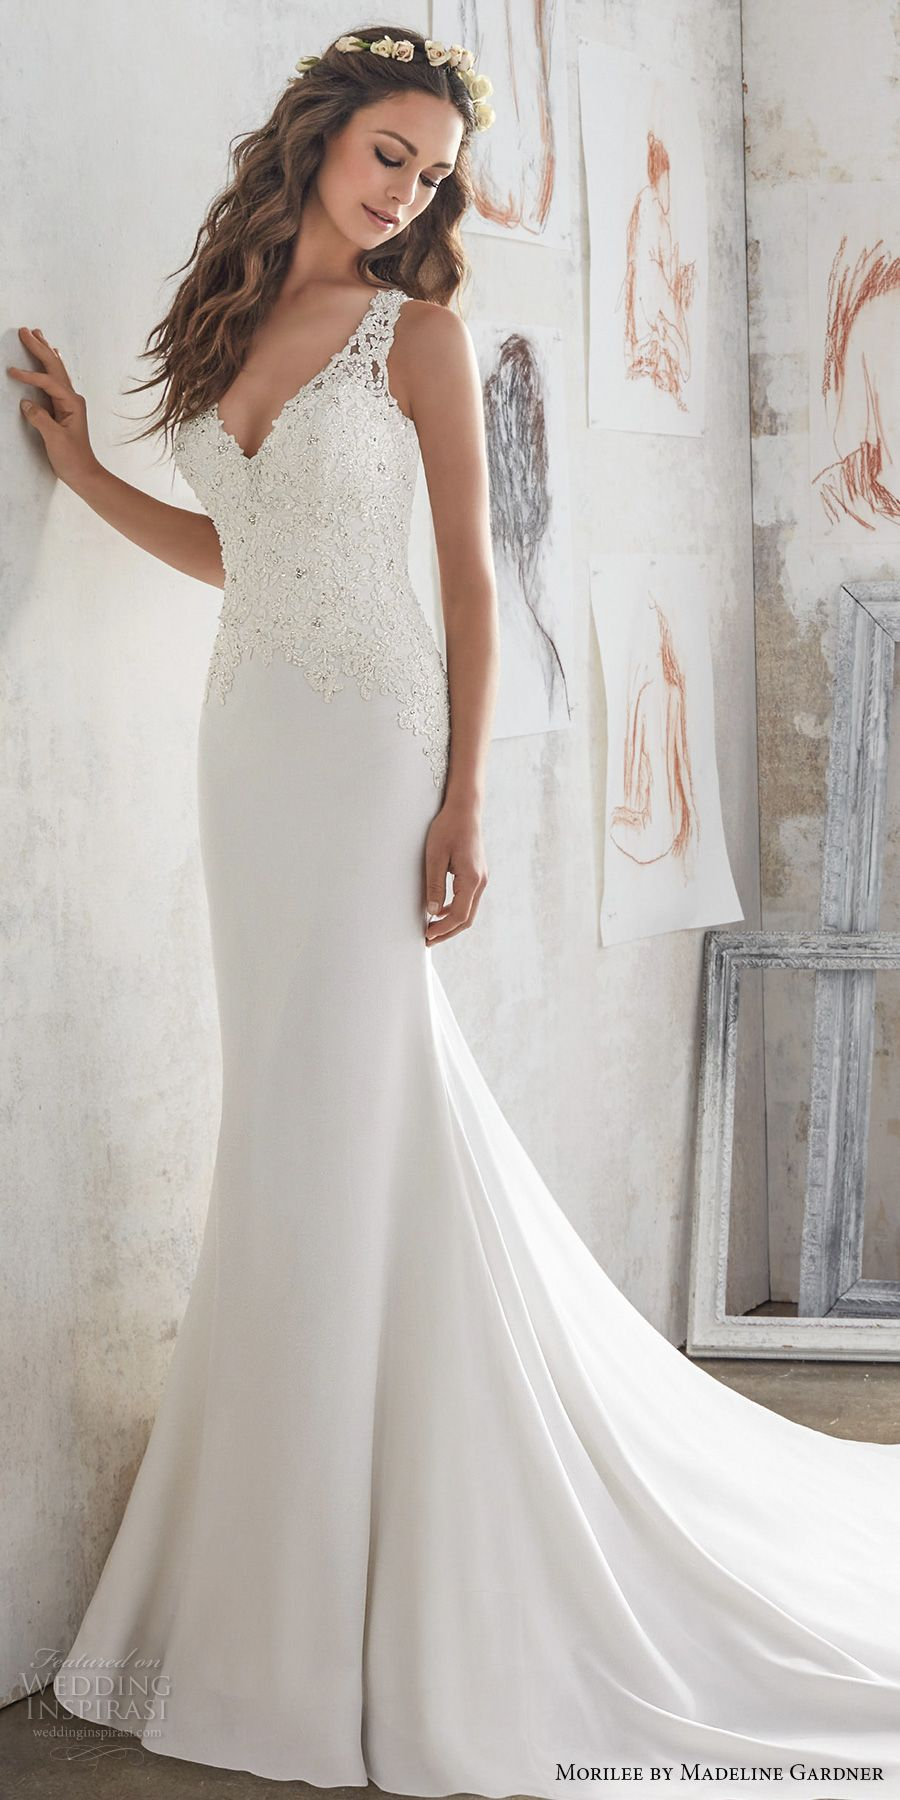 Morilee by madeline gardner spring 2017 wedding dresses blu morilee spring 2017 bridal sleeveless embroidered thick strap v neck heavily embellished bodice sheath wedding dress junglespirit Choice Image